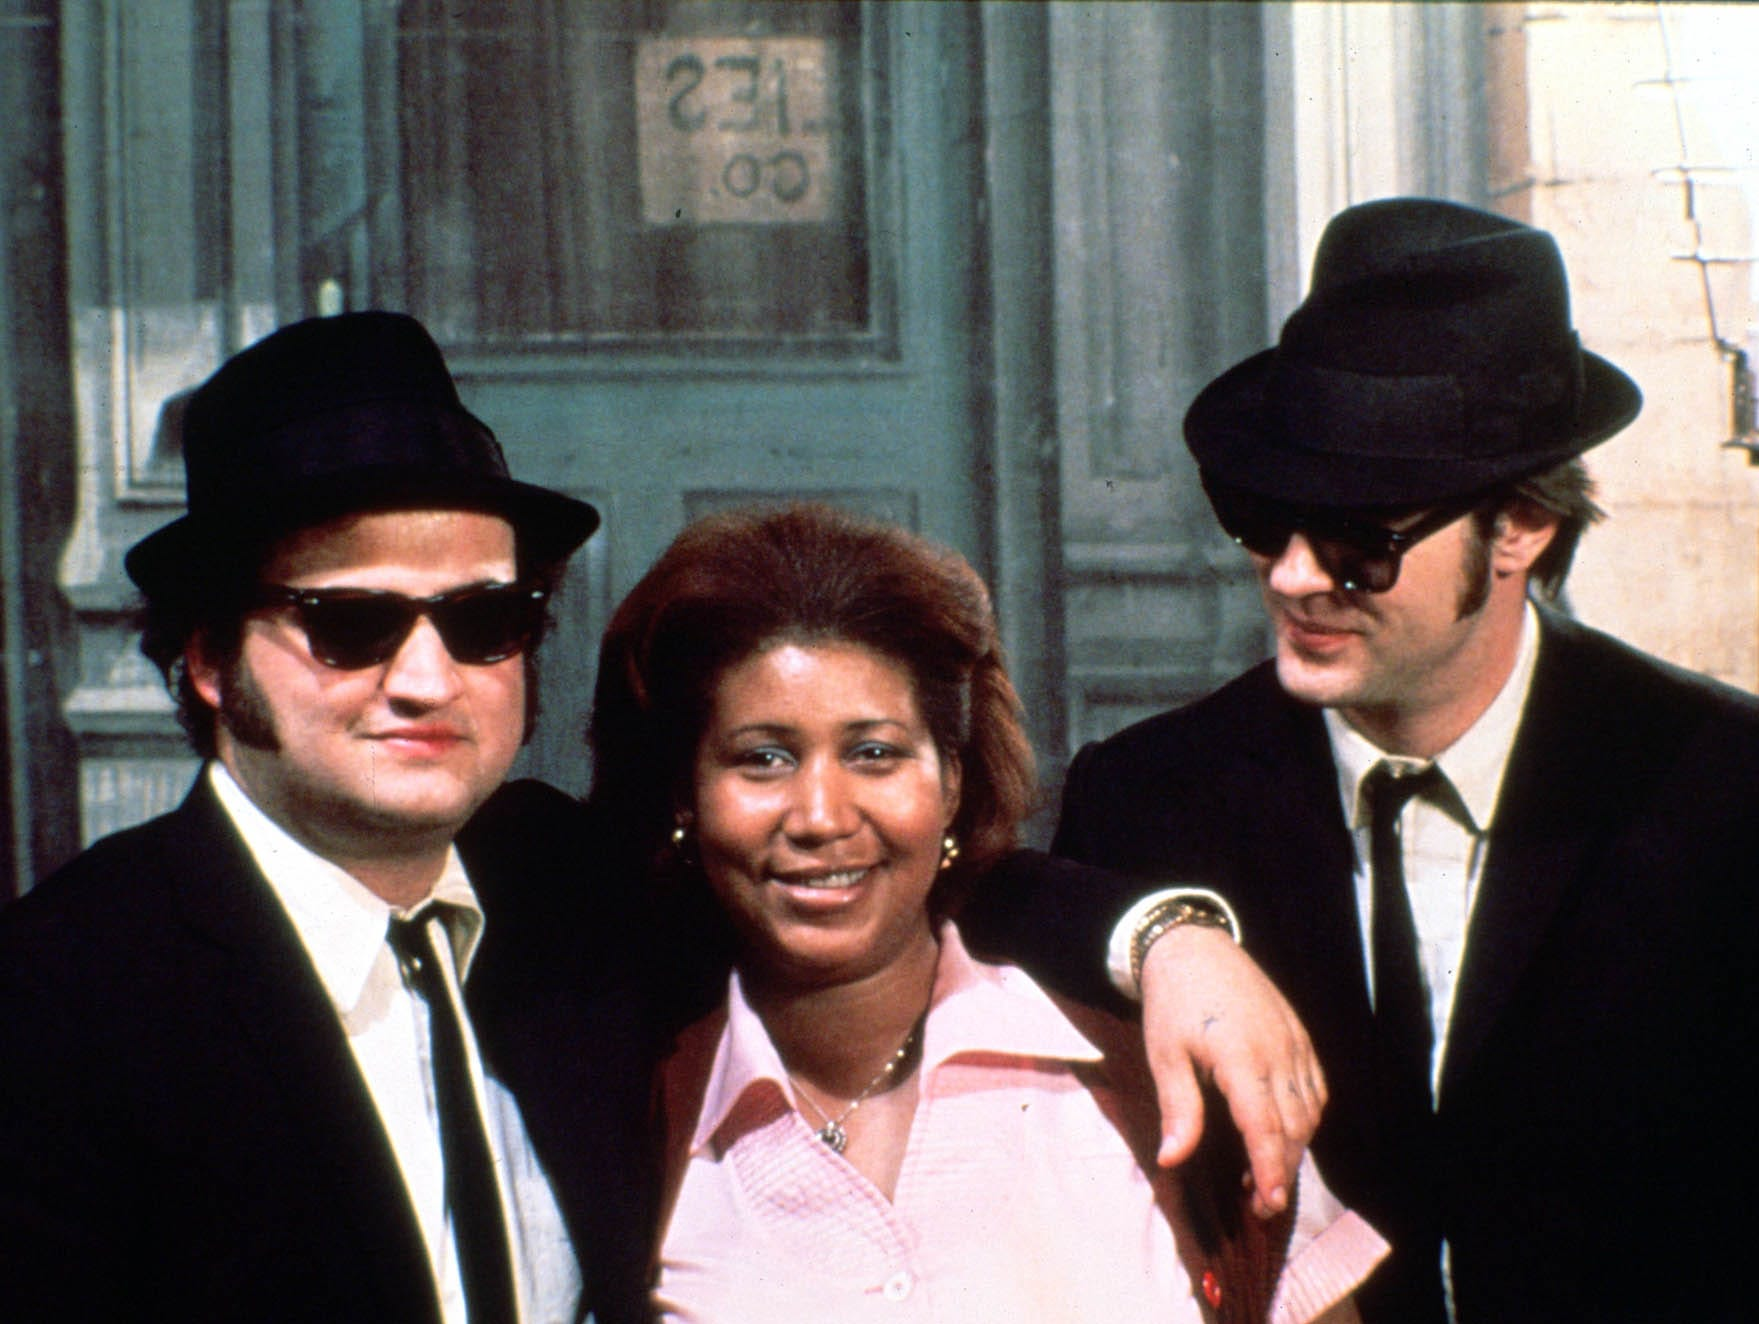 """John Belushi, from left, Aretha Franklin and Dan Aykroyd appear in a scene from the motion picture The Blues Brothers."""""""